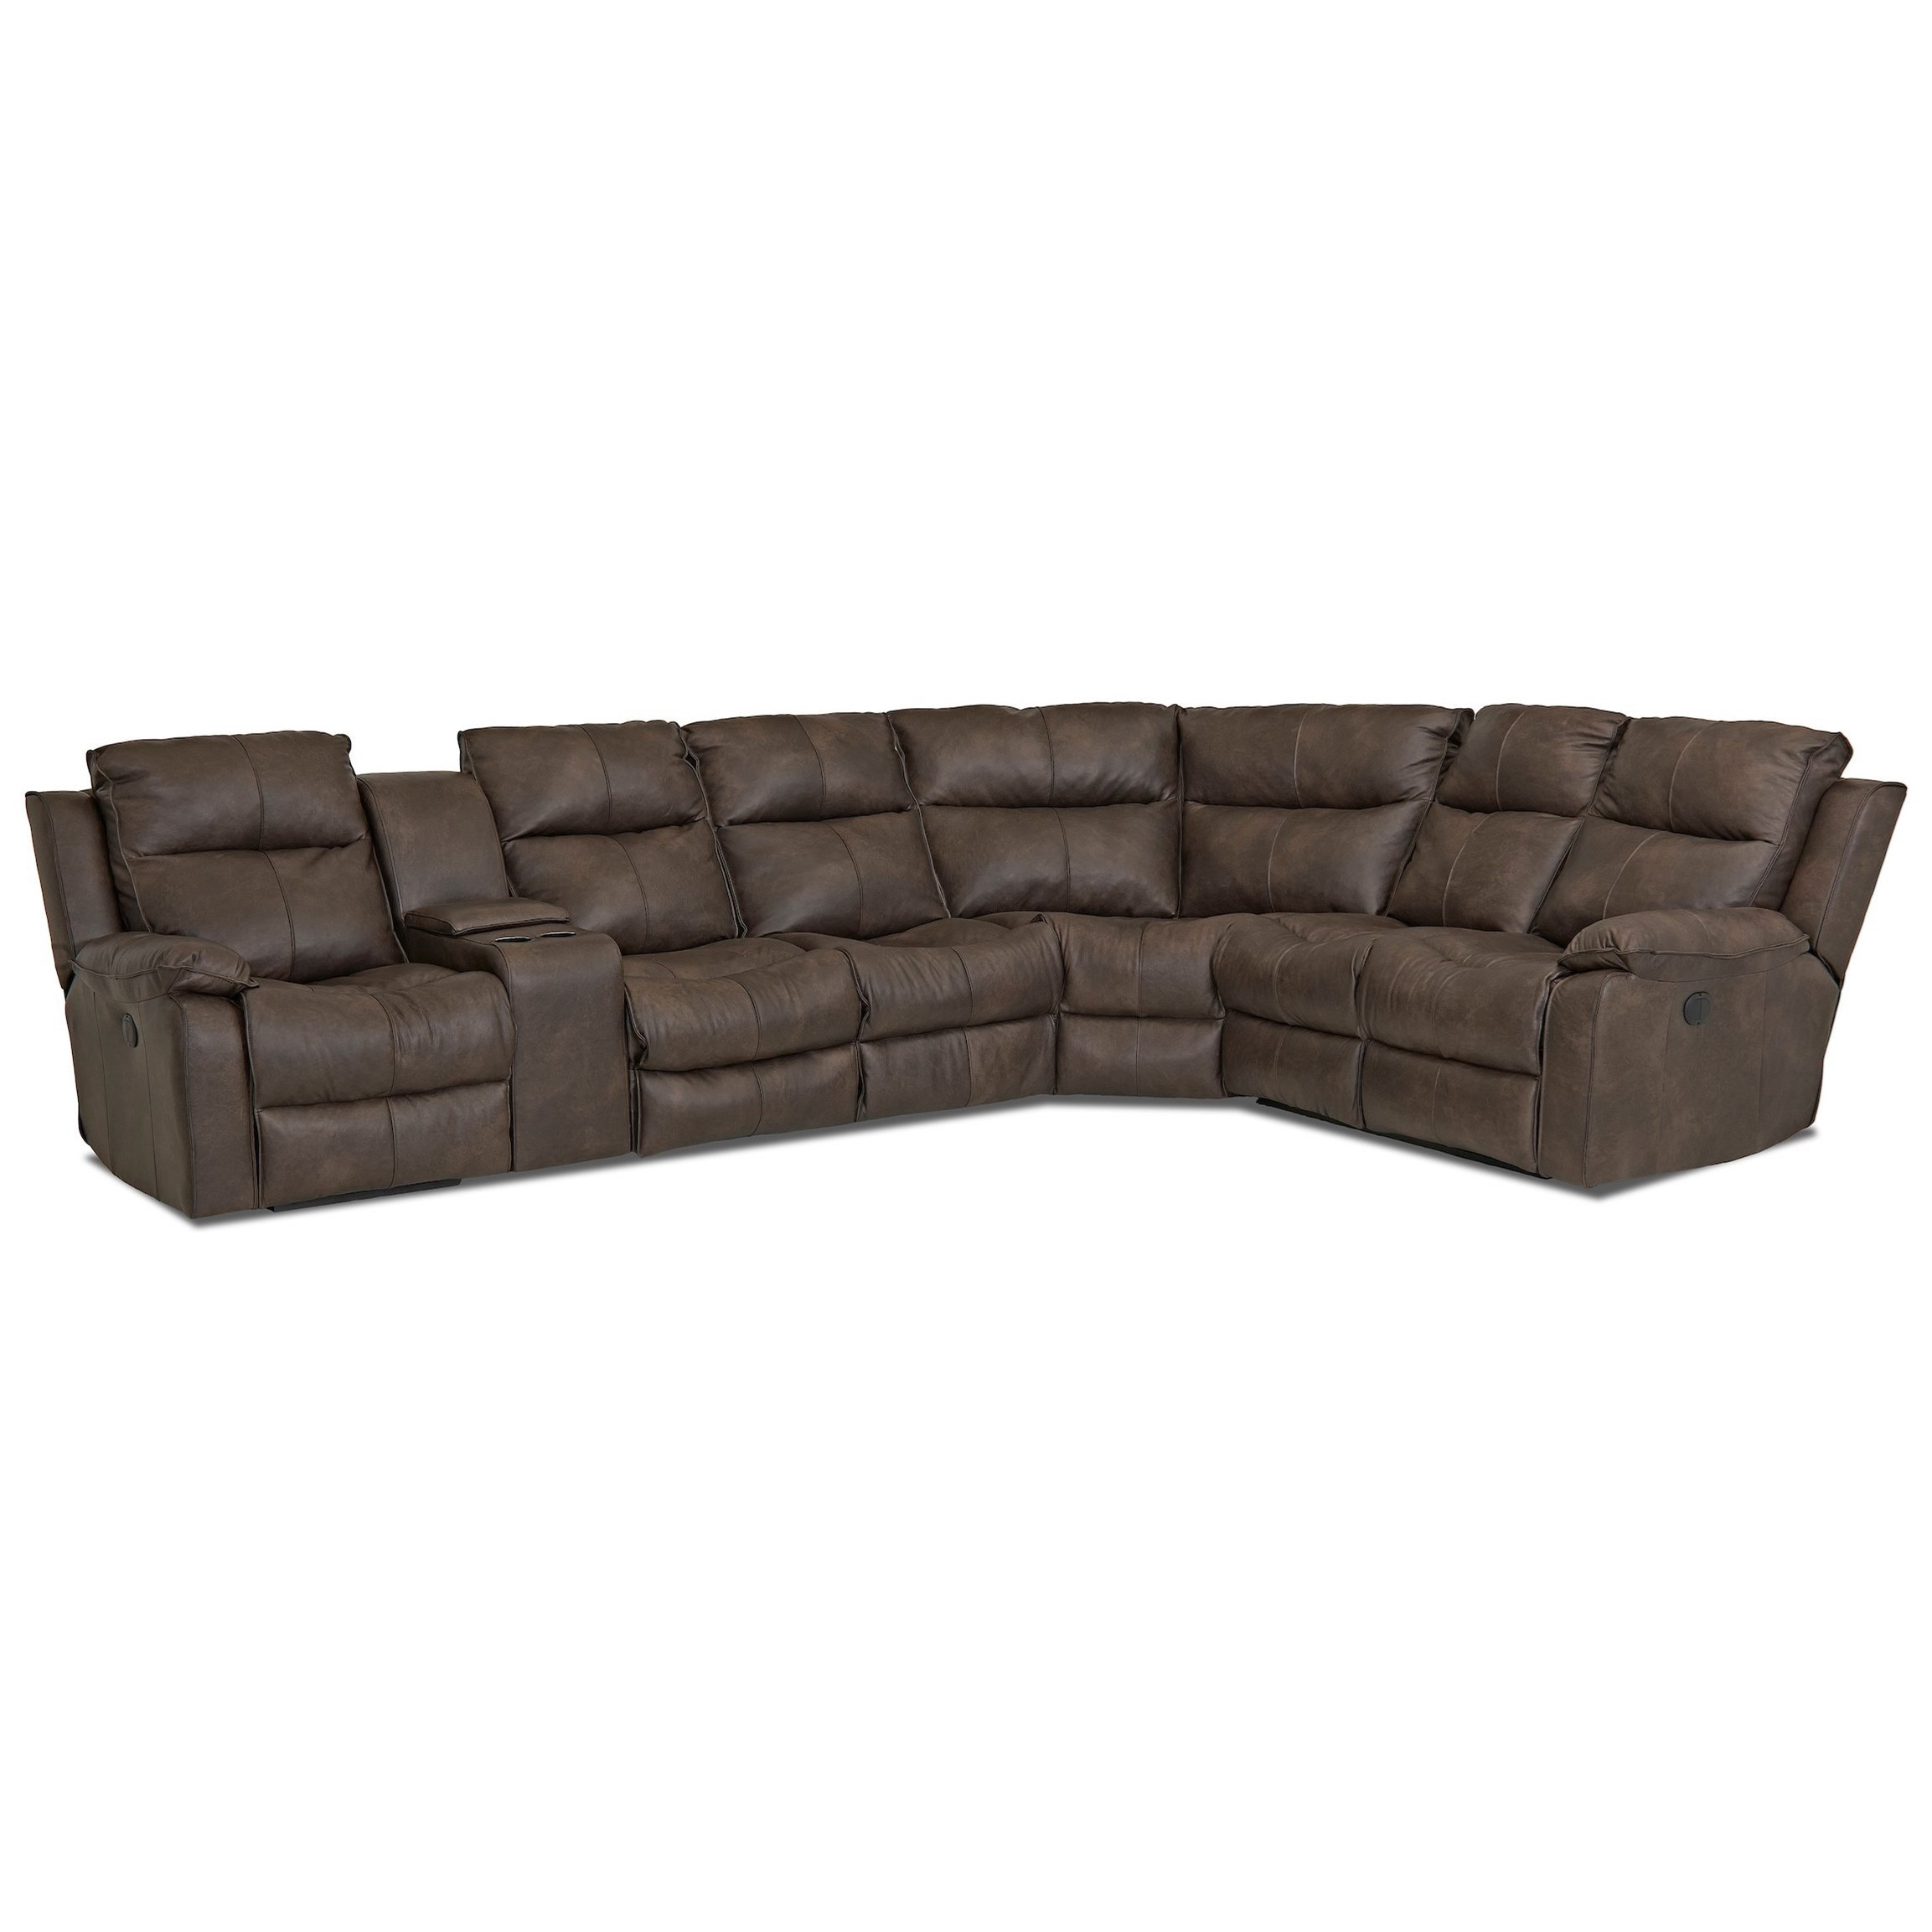 Castaway Reclining Sectional Sofa by Klaussner at Northeast Factory Direct